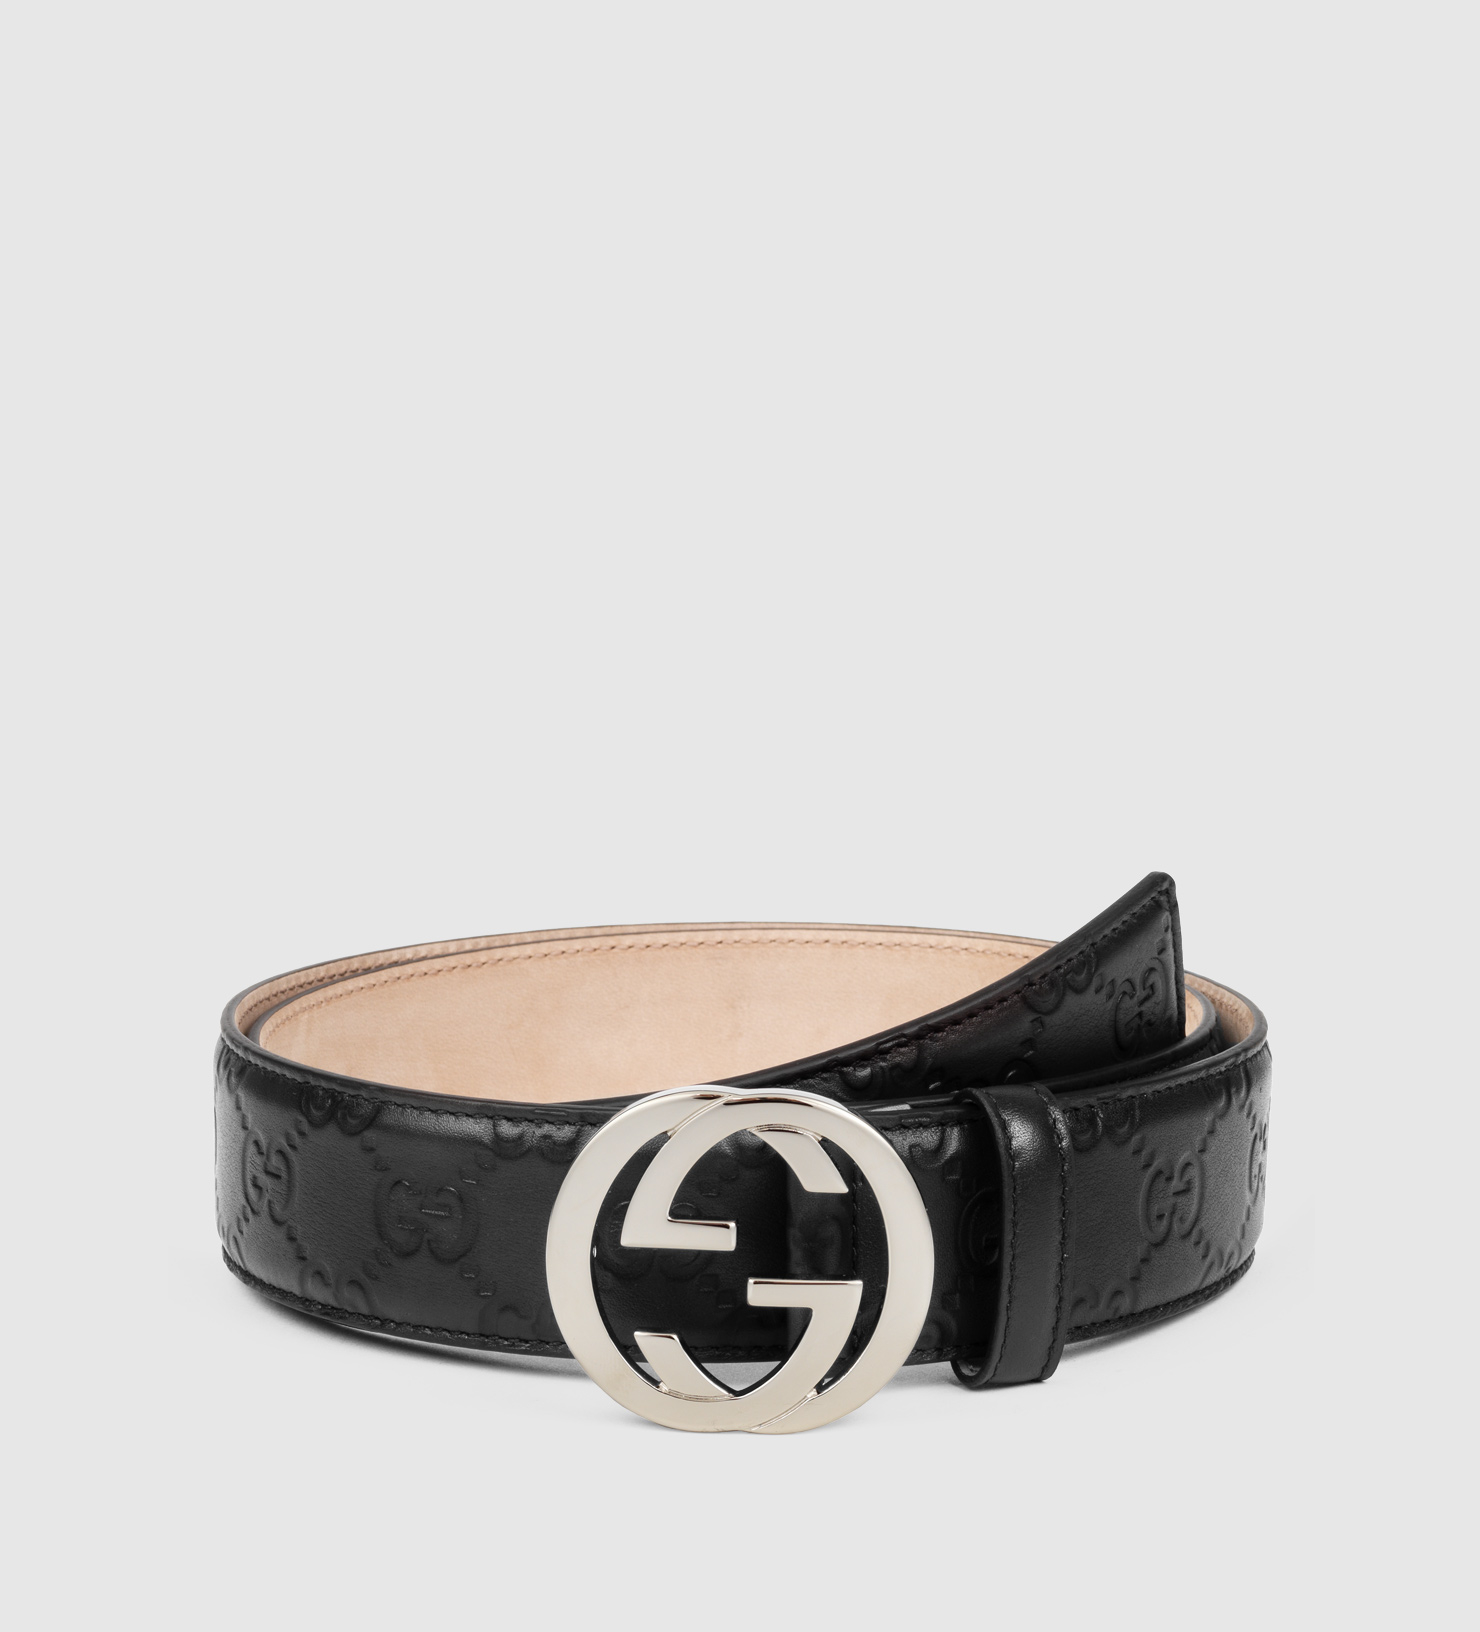 the gallery for gt gucci belt black buckle